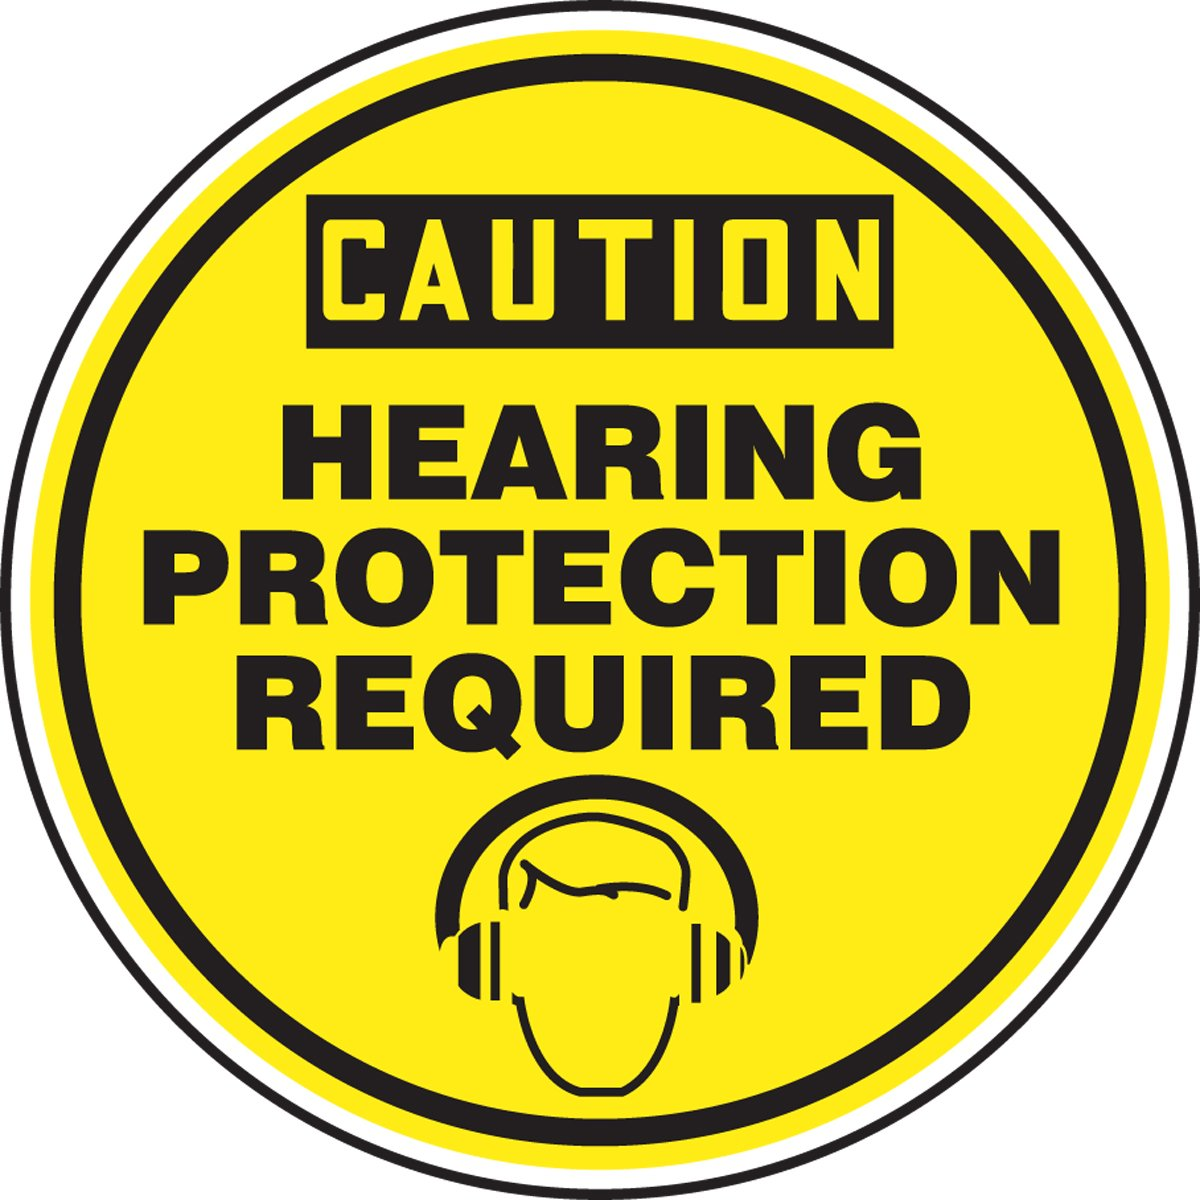 Accuform Caution Hearing Protection Required Wgraphic Mshp695vp